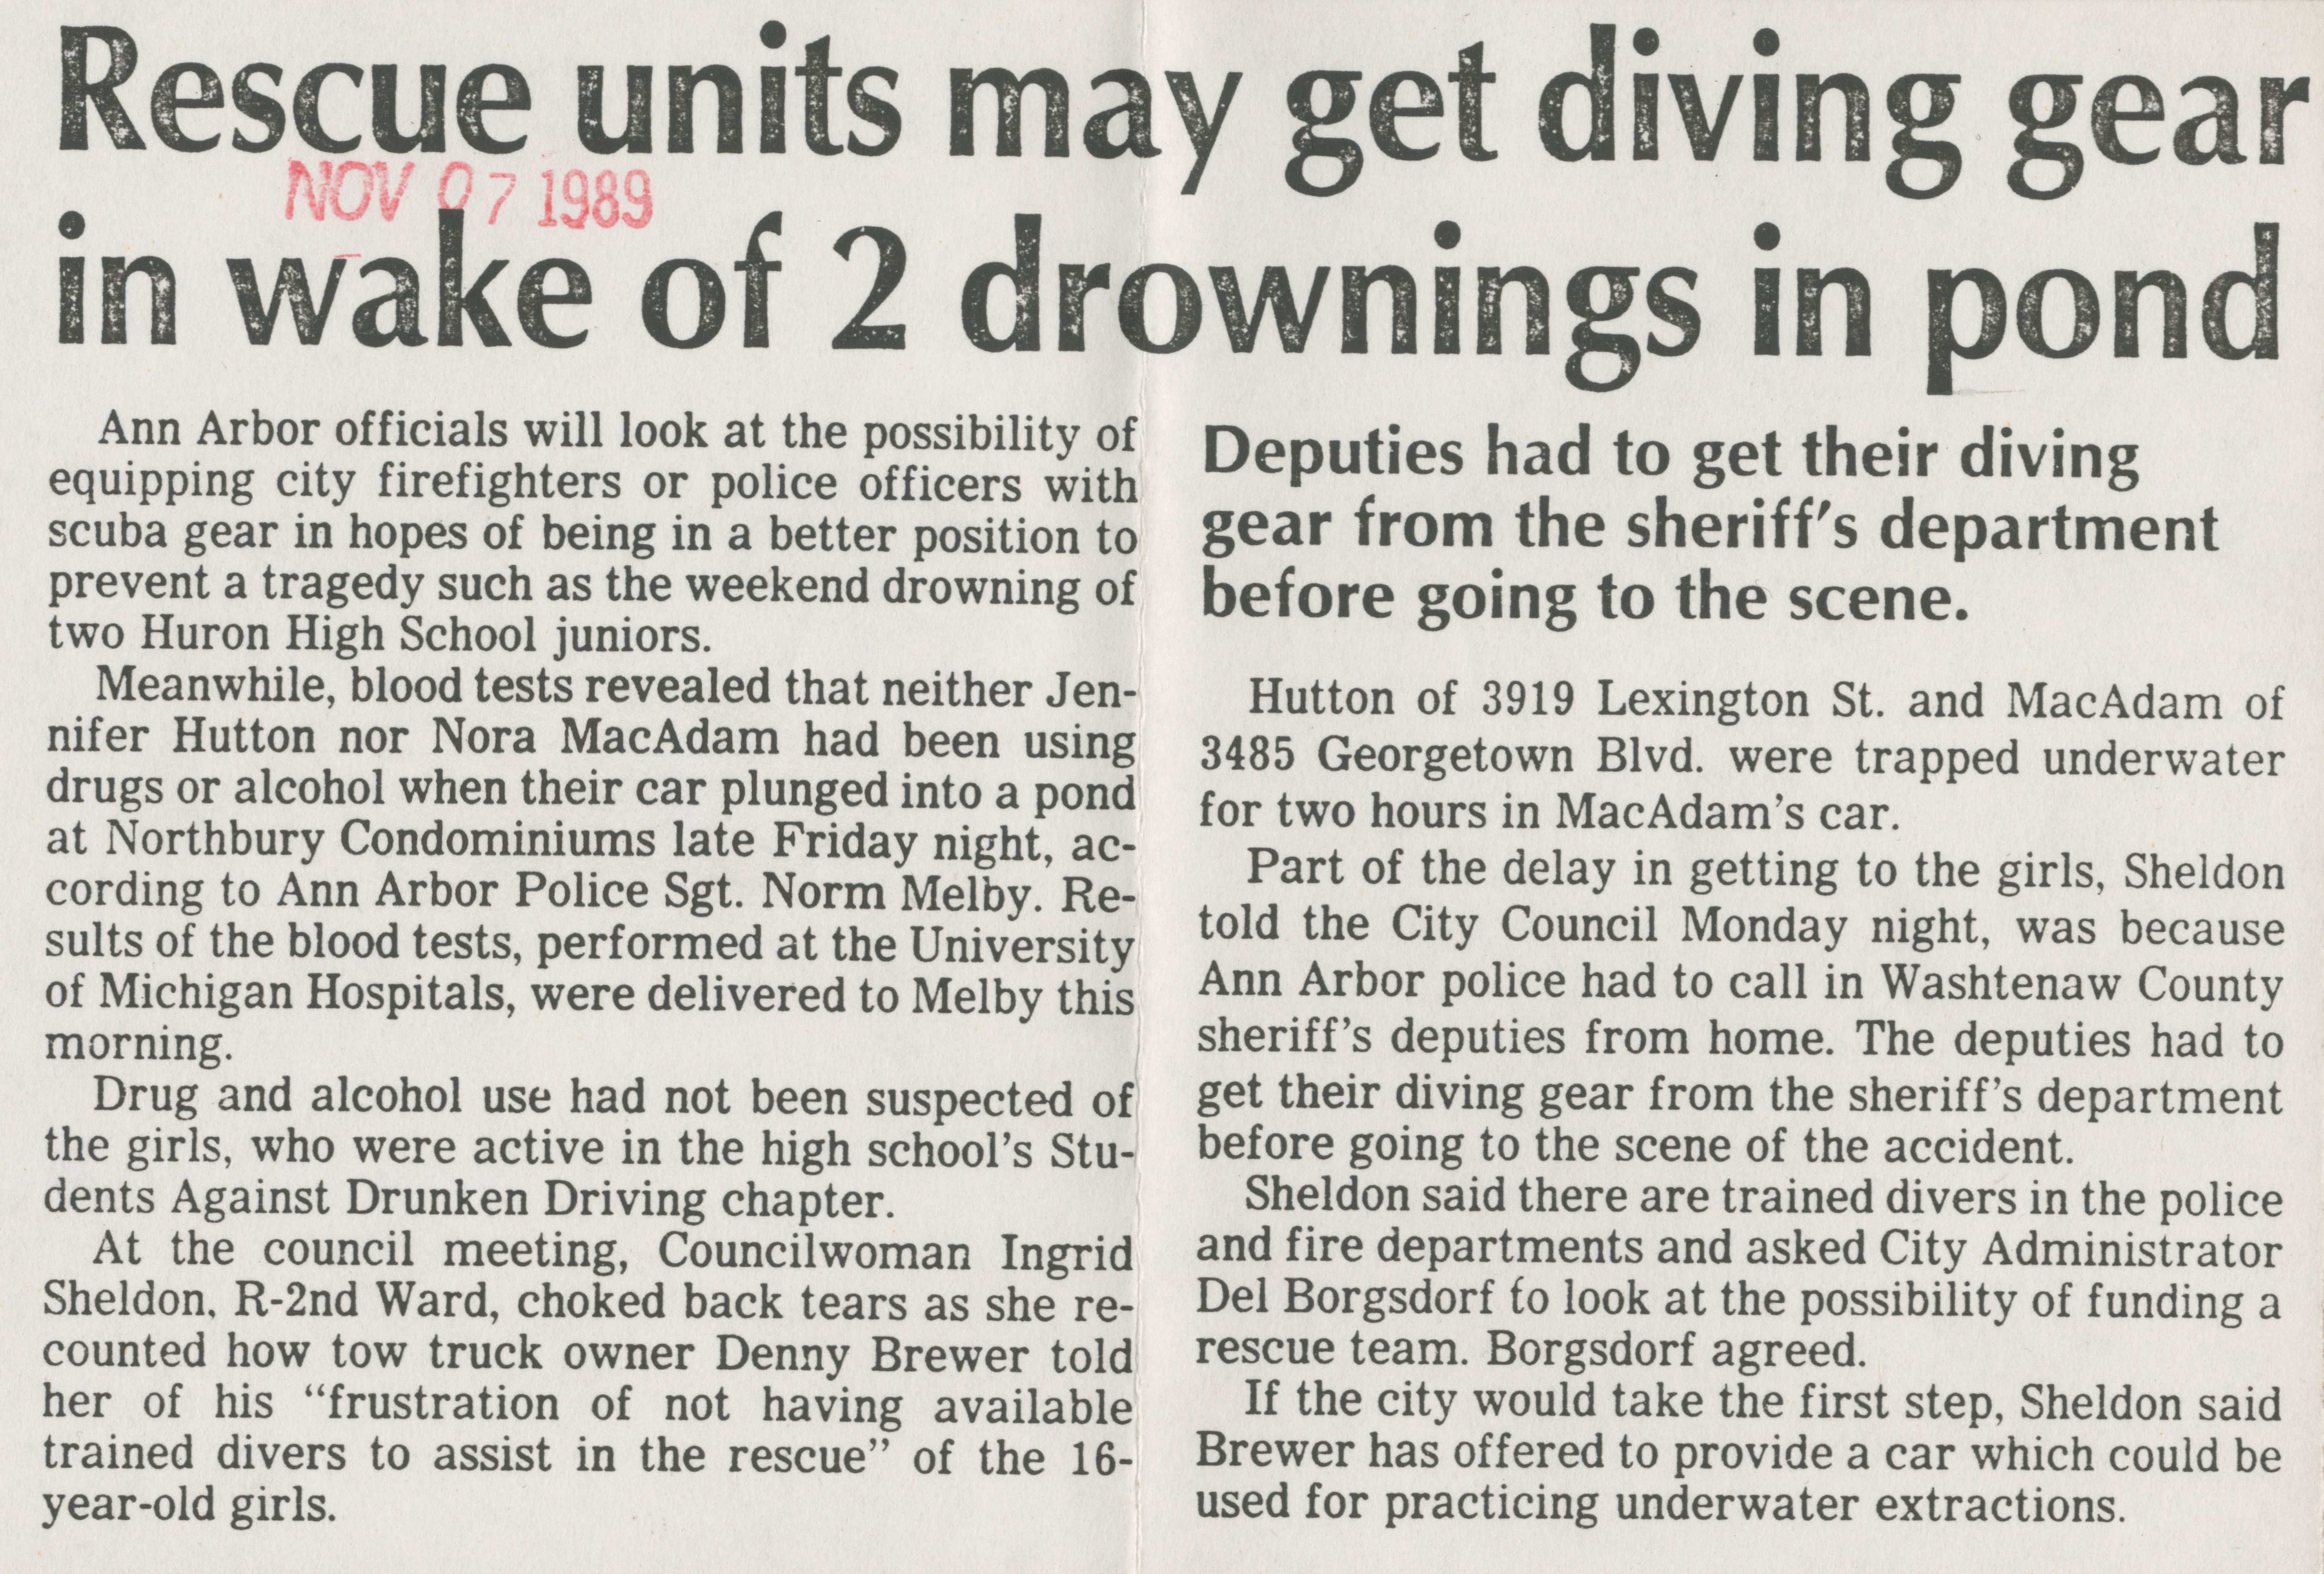 Rescue units may get diving gear in wake of 2 drownings in pond image